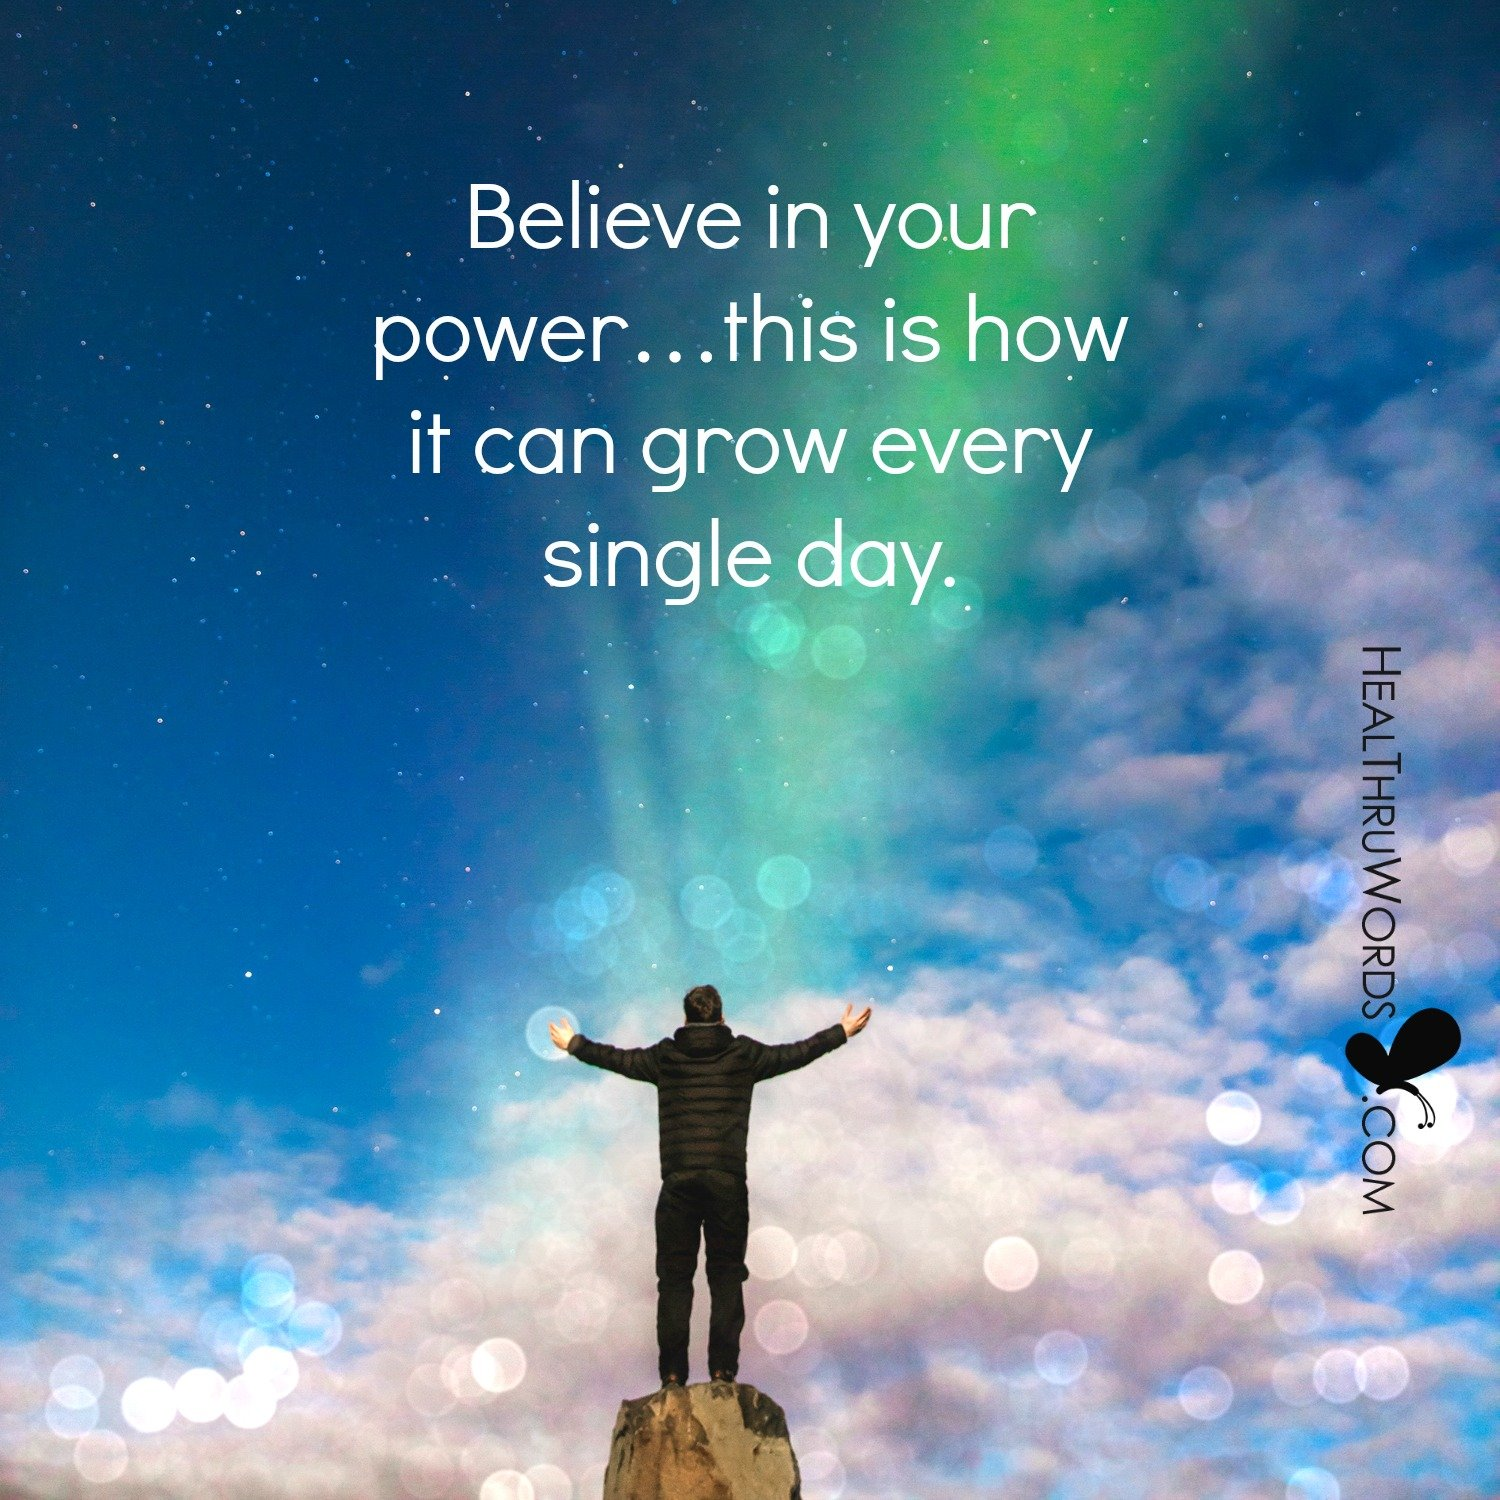 Inspirational Image: May The Power Be With You